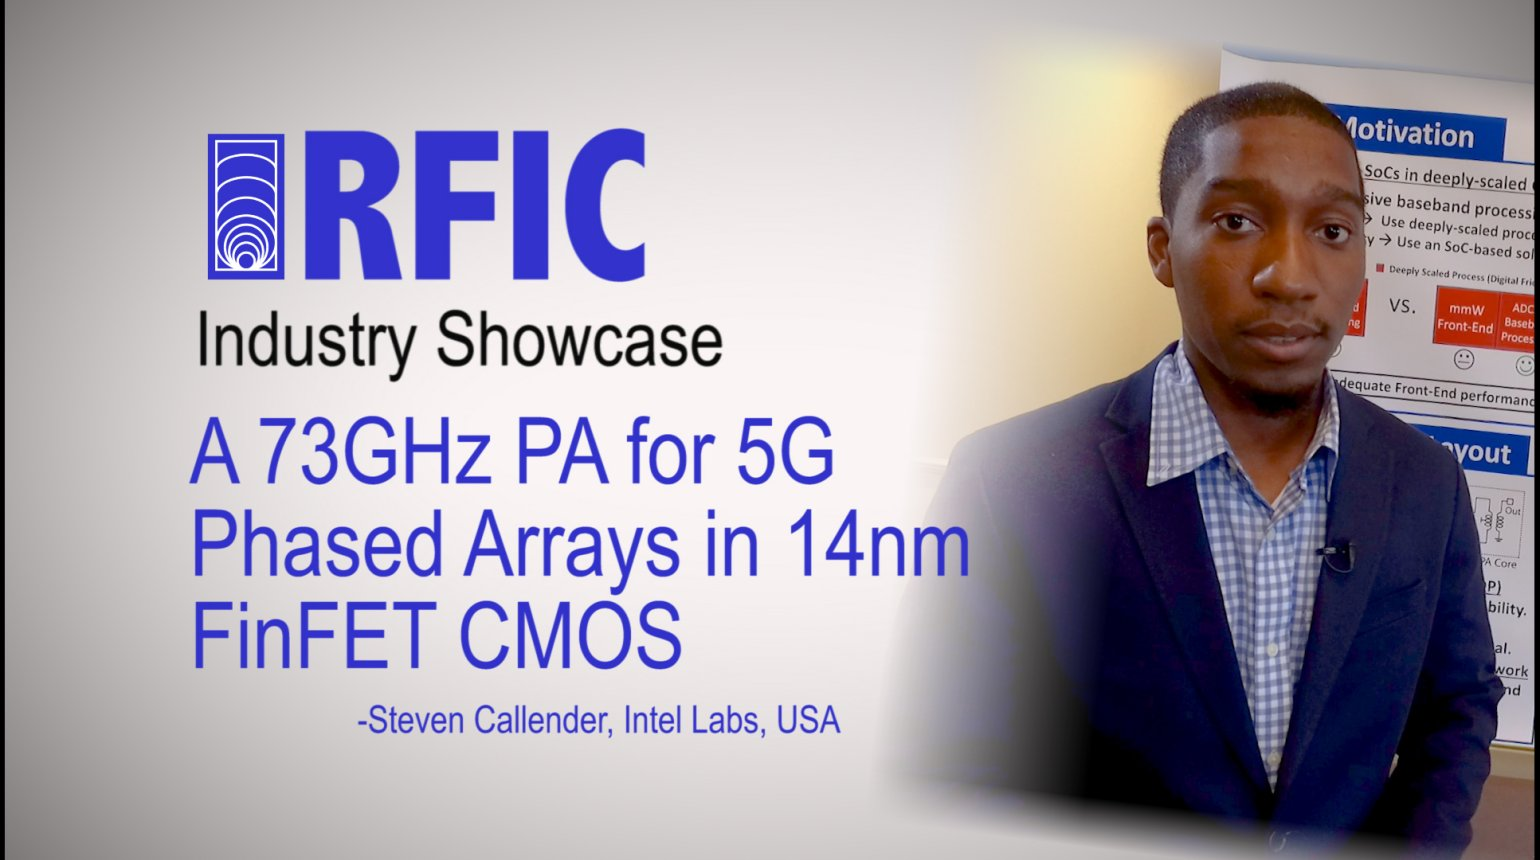 A 73GHz PA for 5G Phased Arrays in 14nm FinFET CMOS: RFIC Industry Showcase 2017